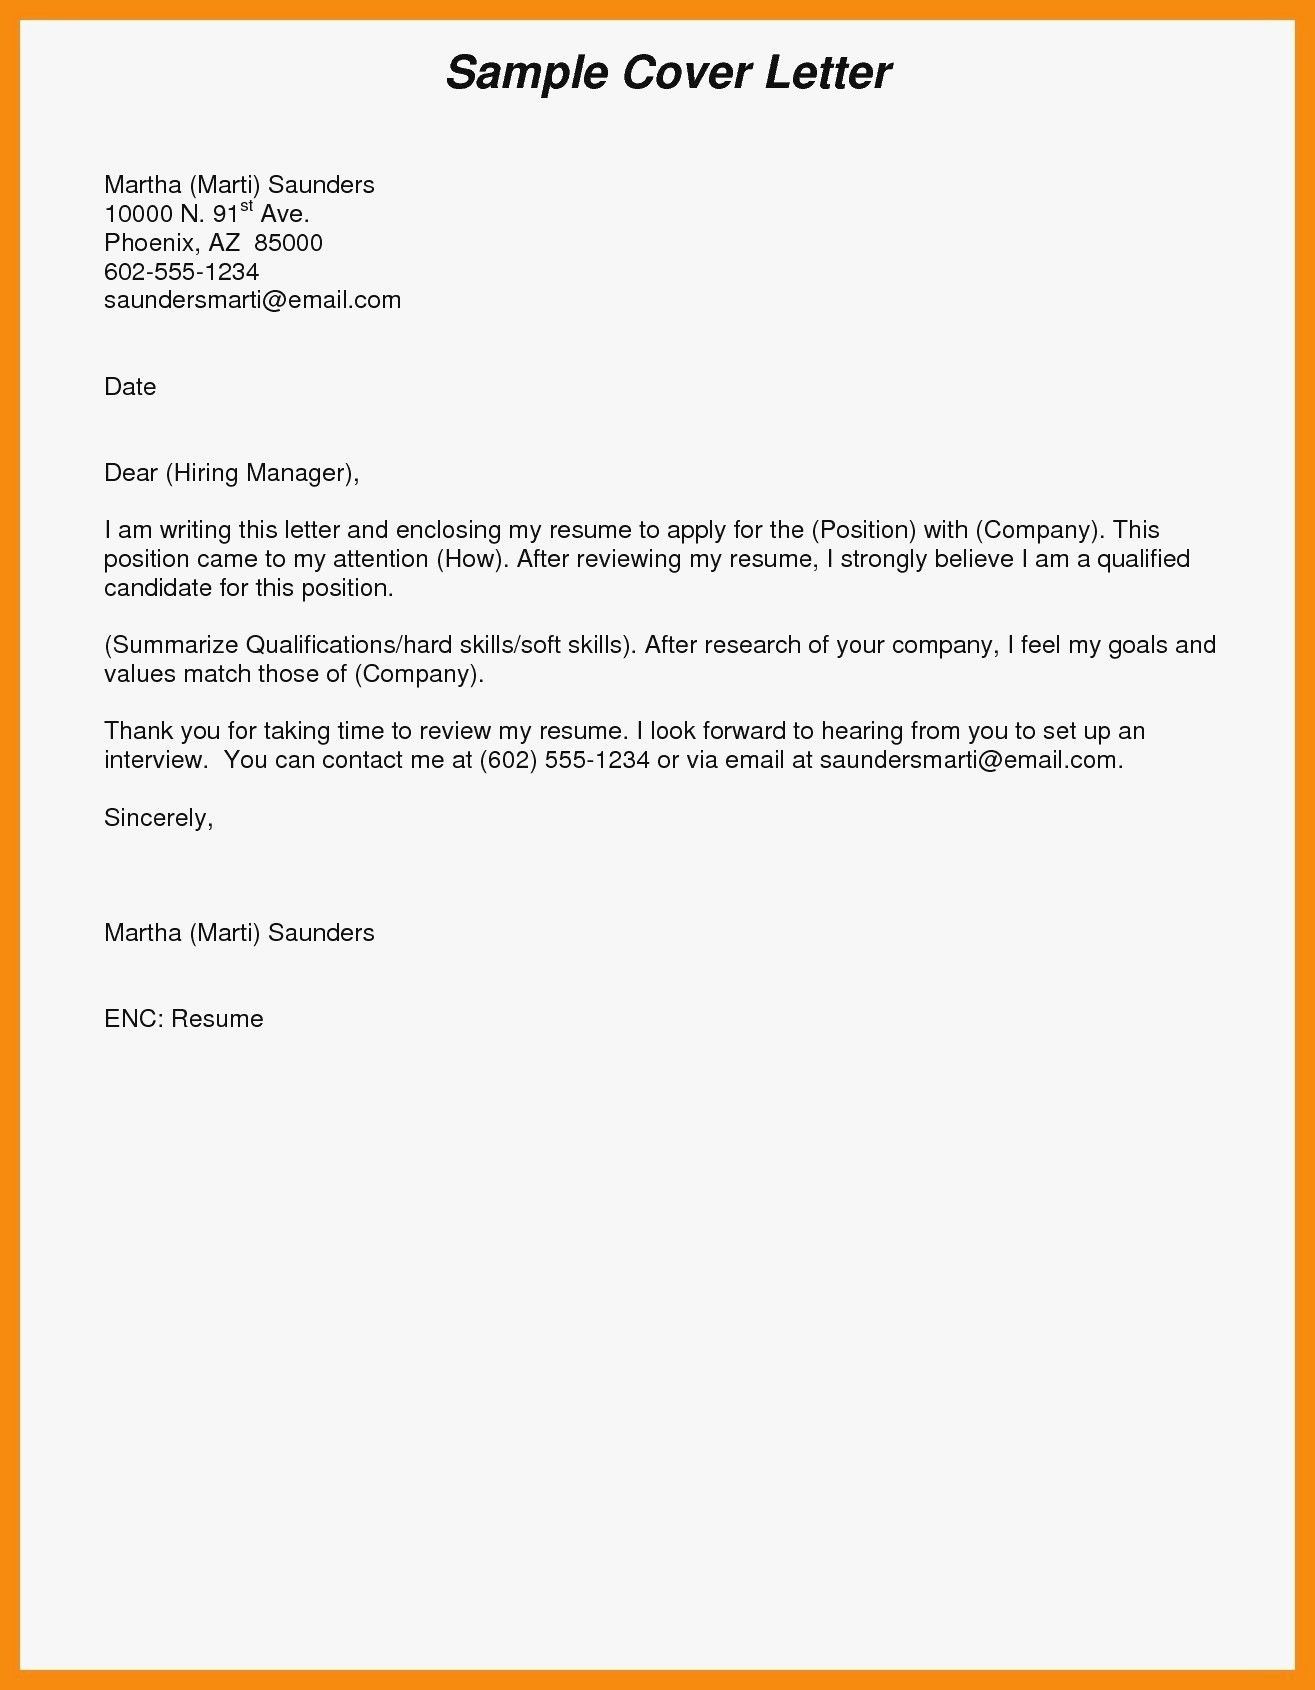 30 Sample Cover Letter For Job Job Cover Letter Writing A